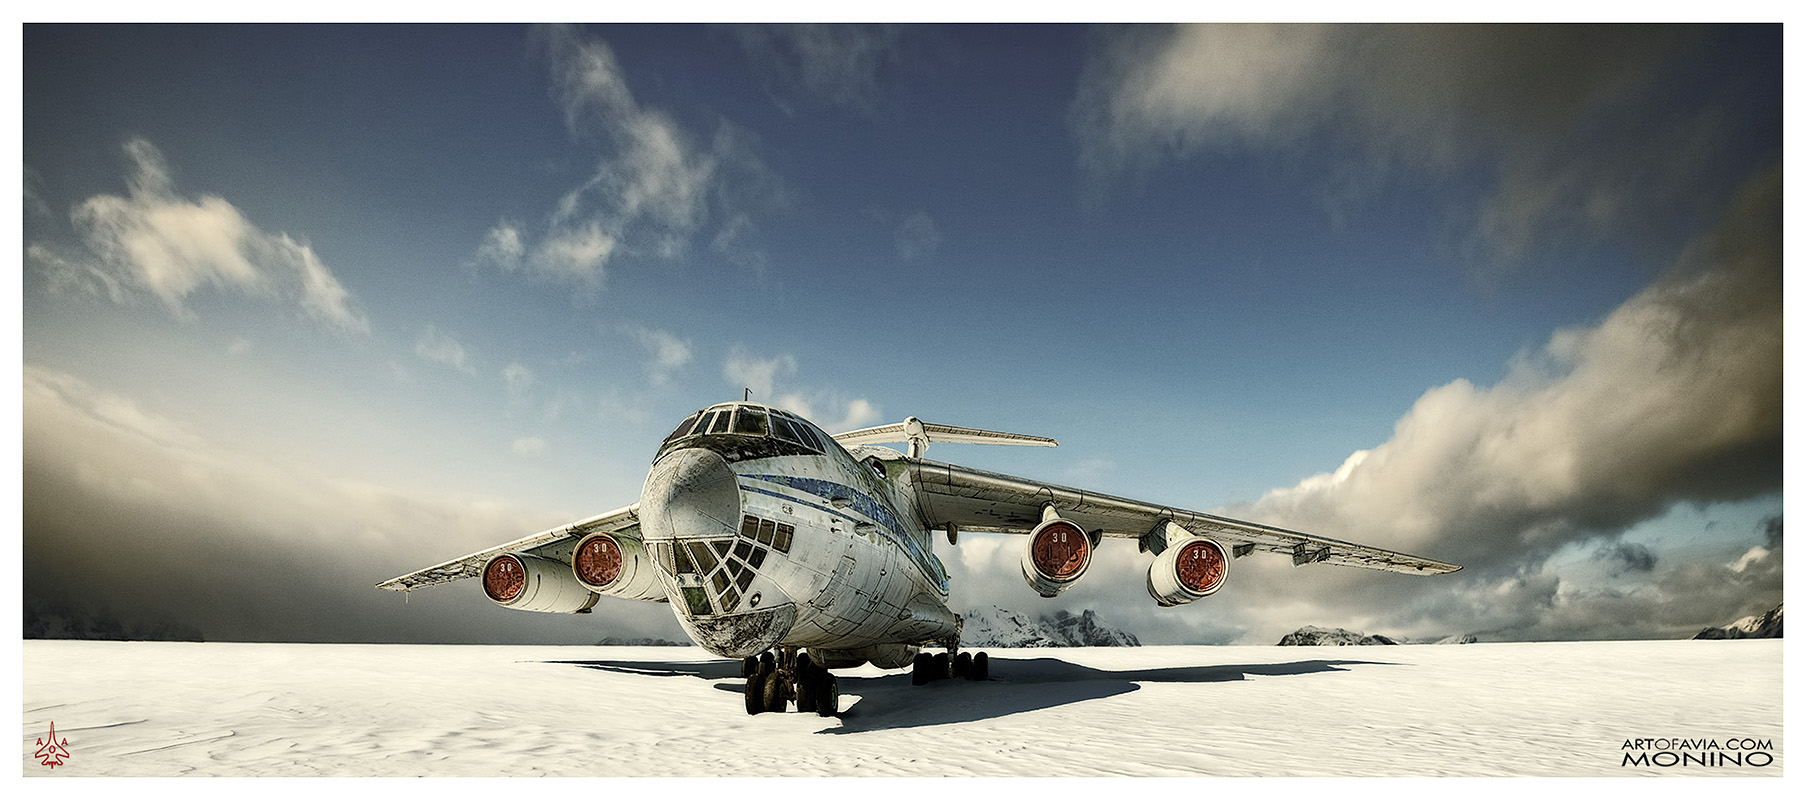 Ilyushin Il-76 Art of Avia Central Air Force Museum Monino